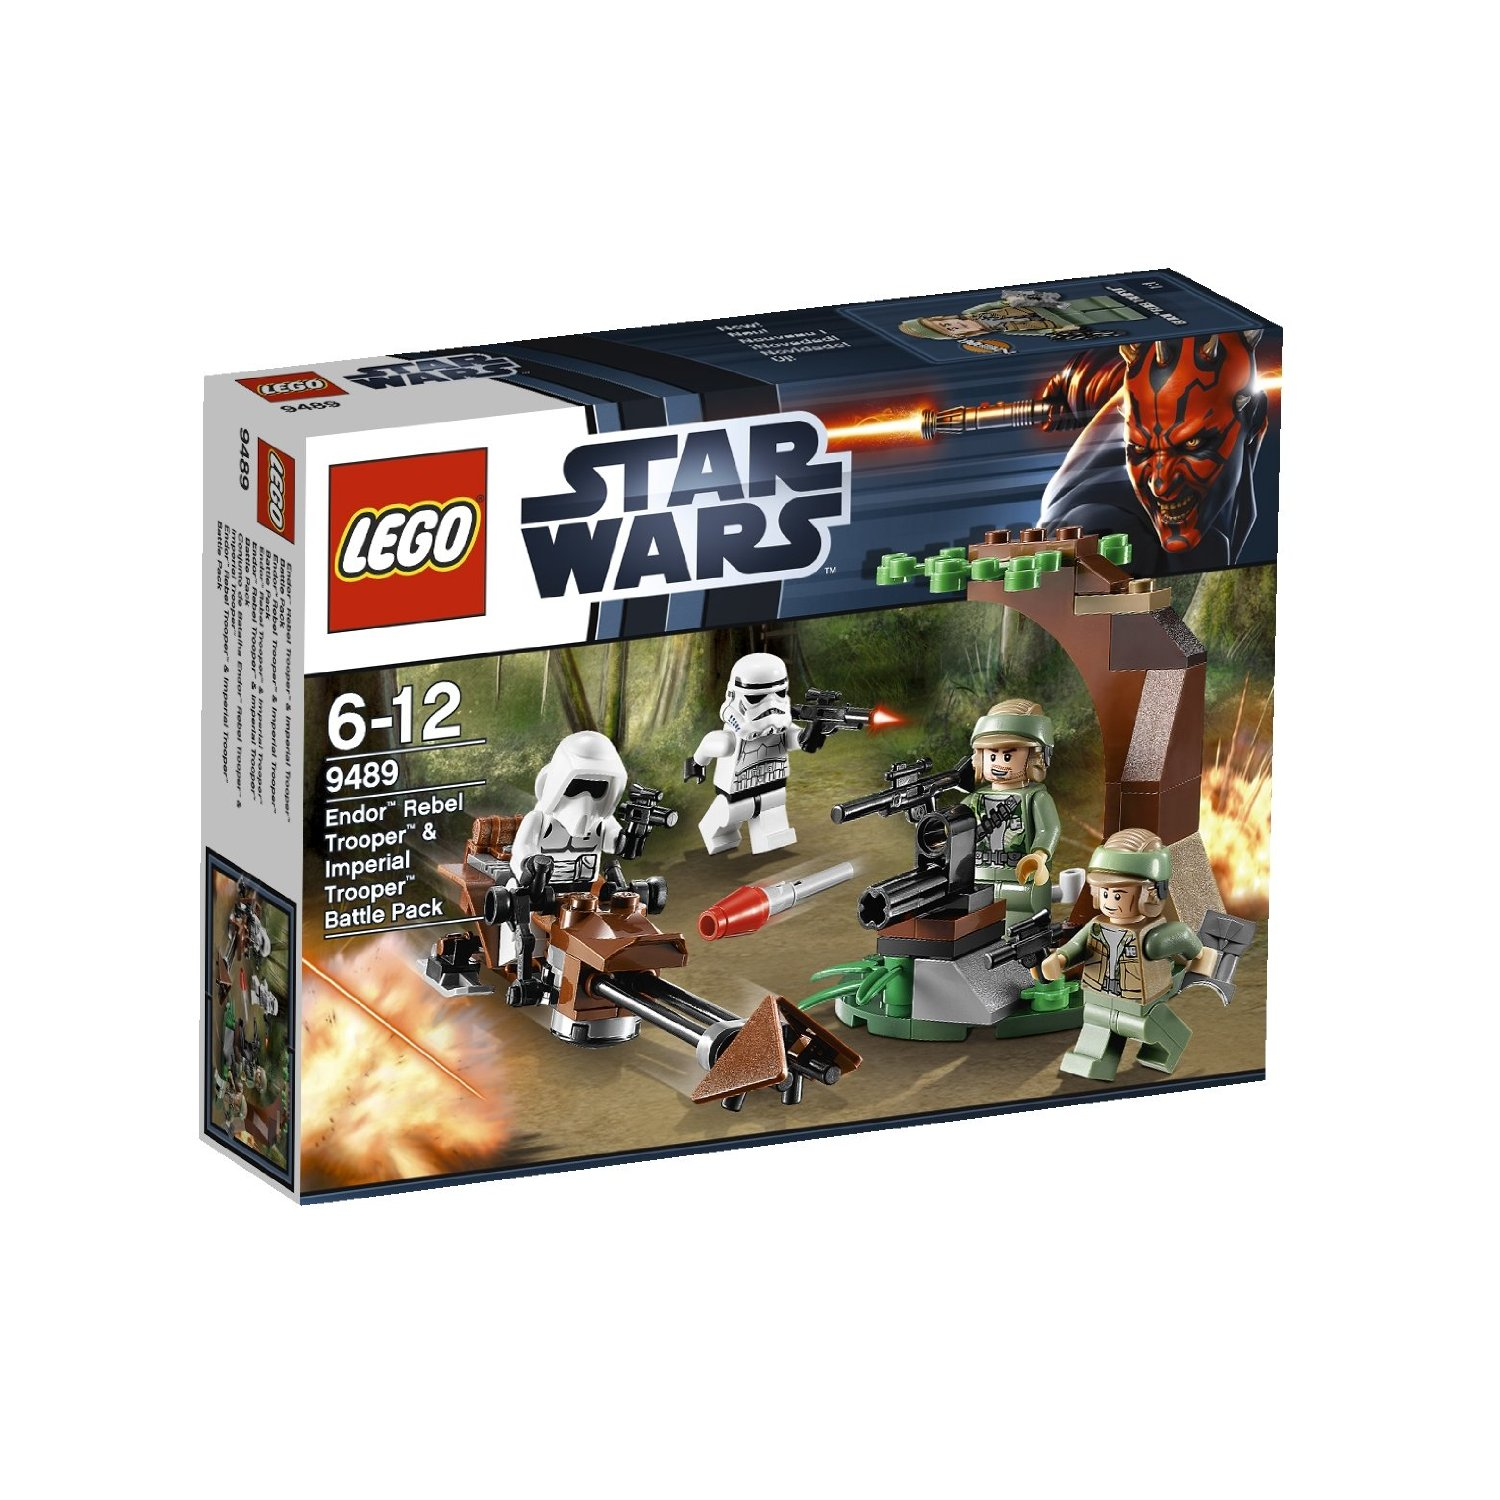 7040 jeux de construction lego lego star wars 9489 endor rebel